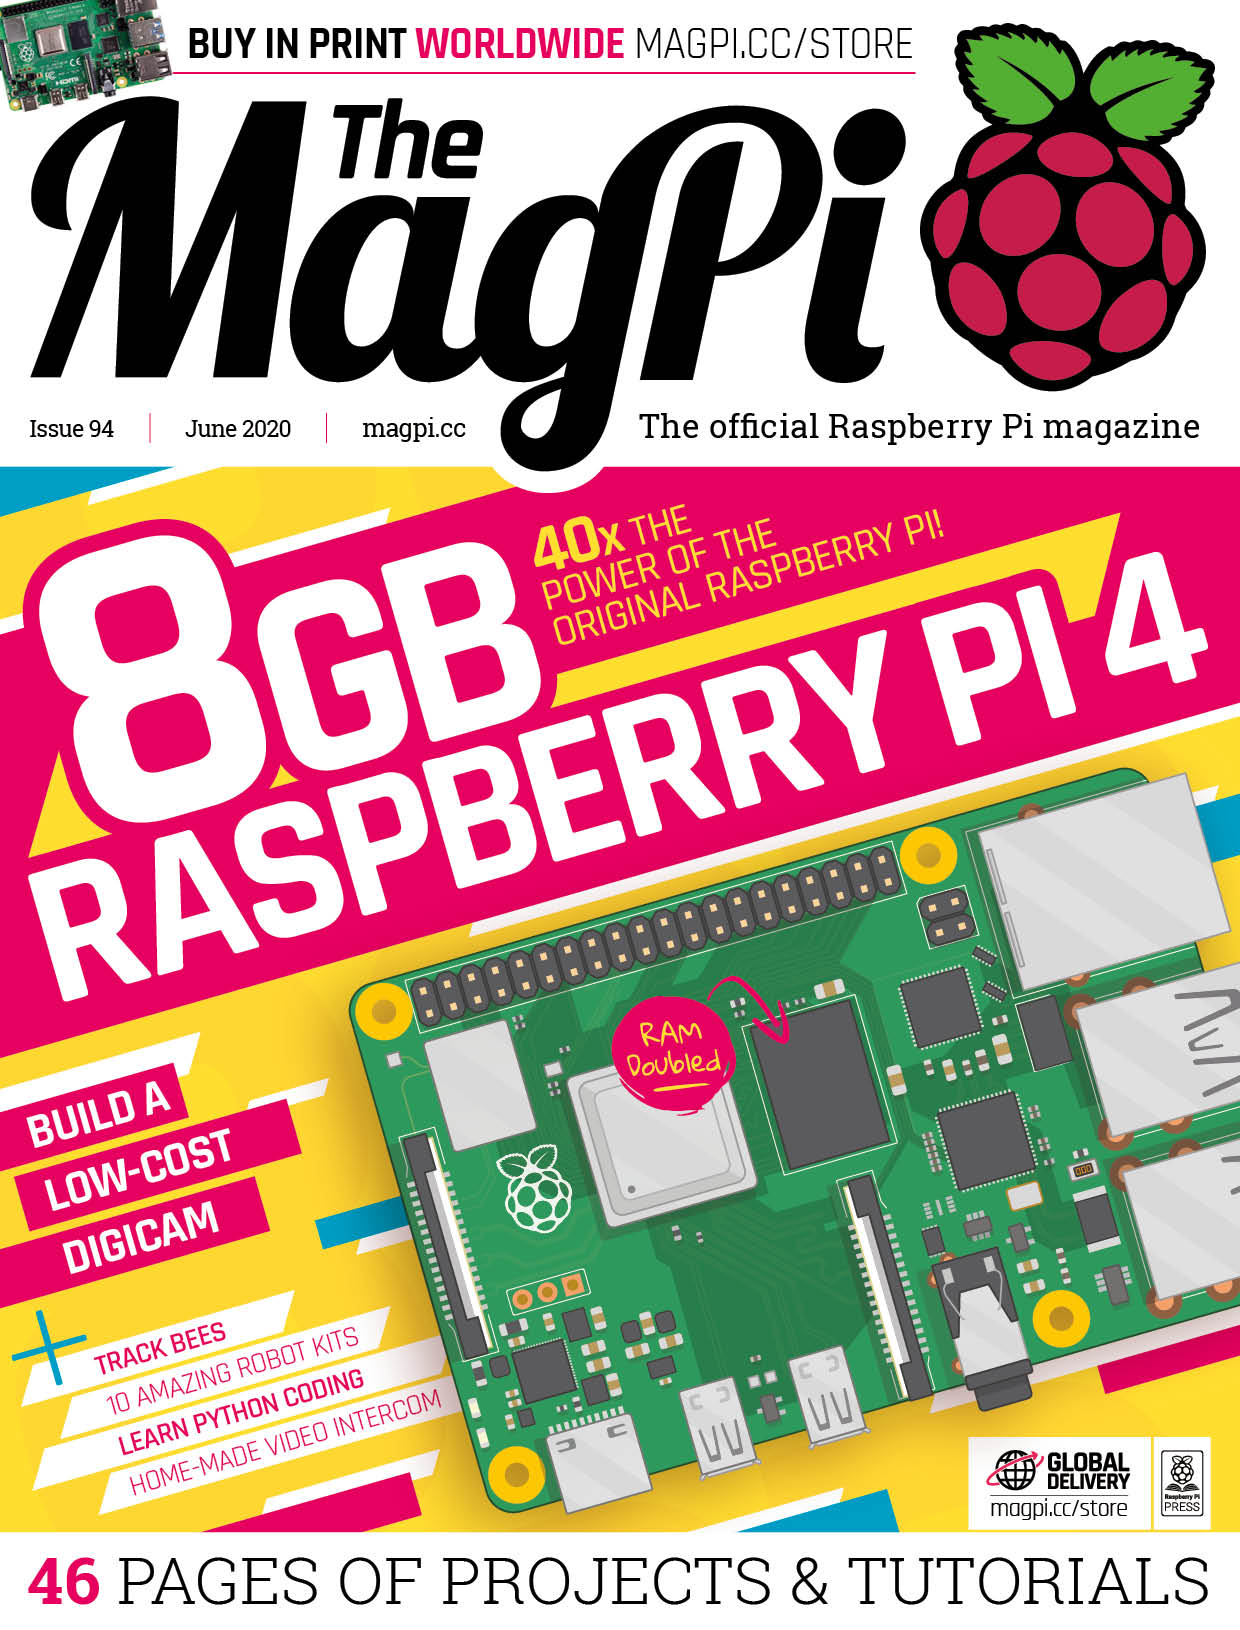 The MagPi issue 94 cover